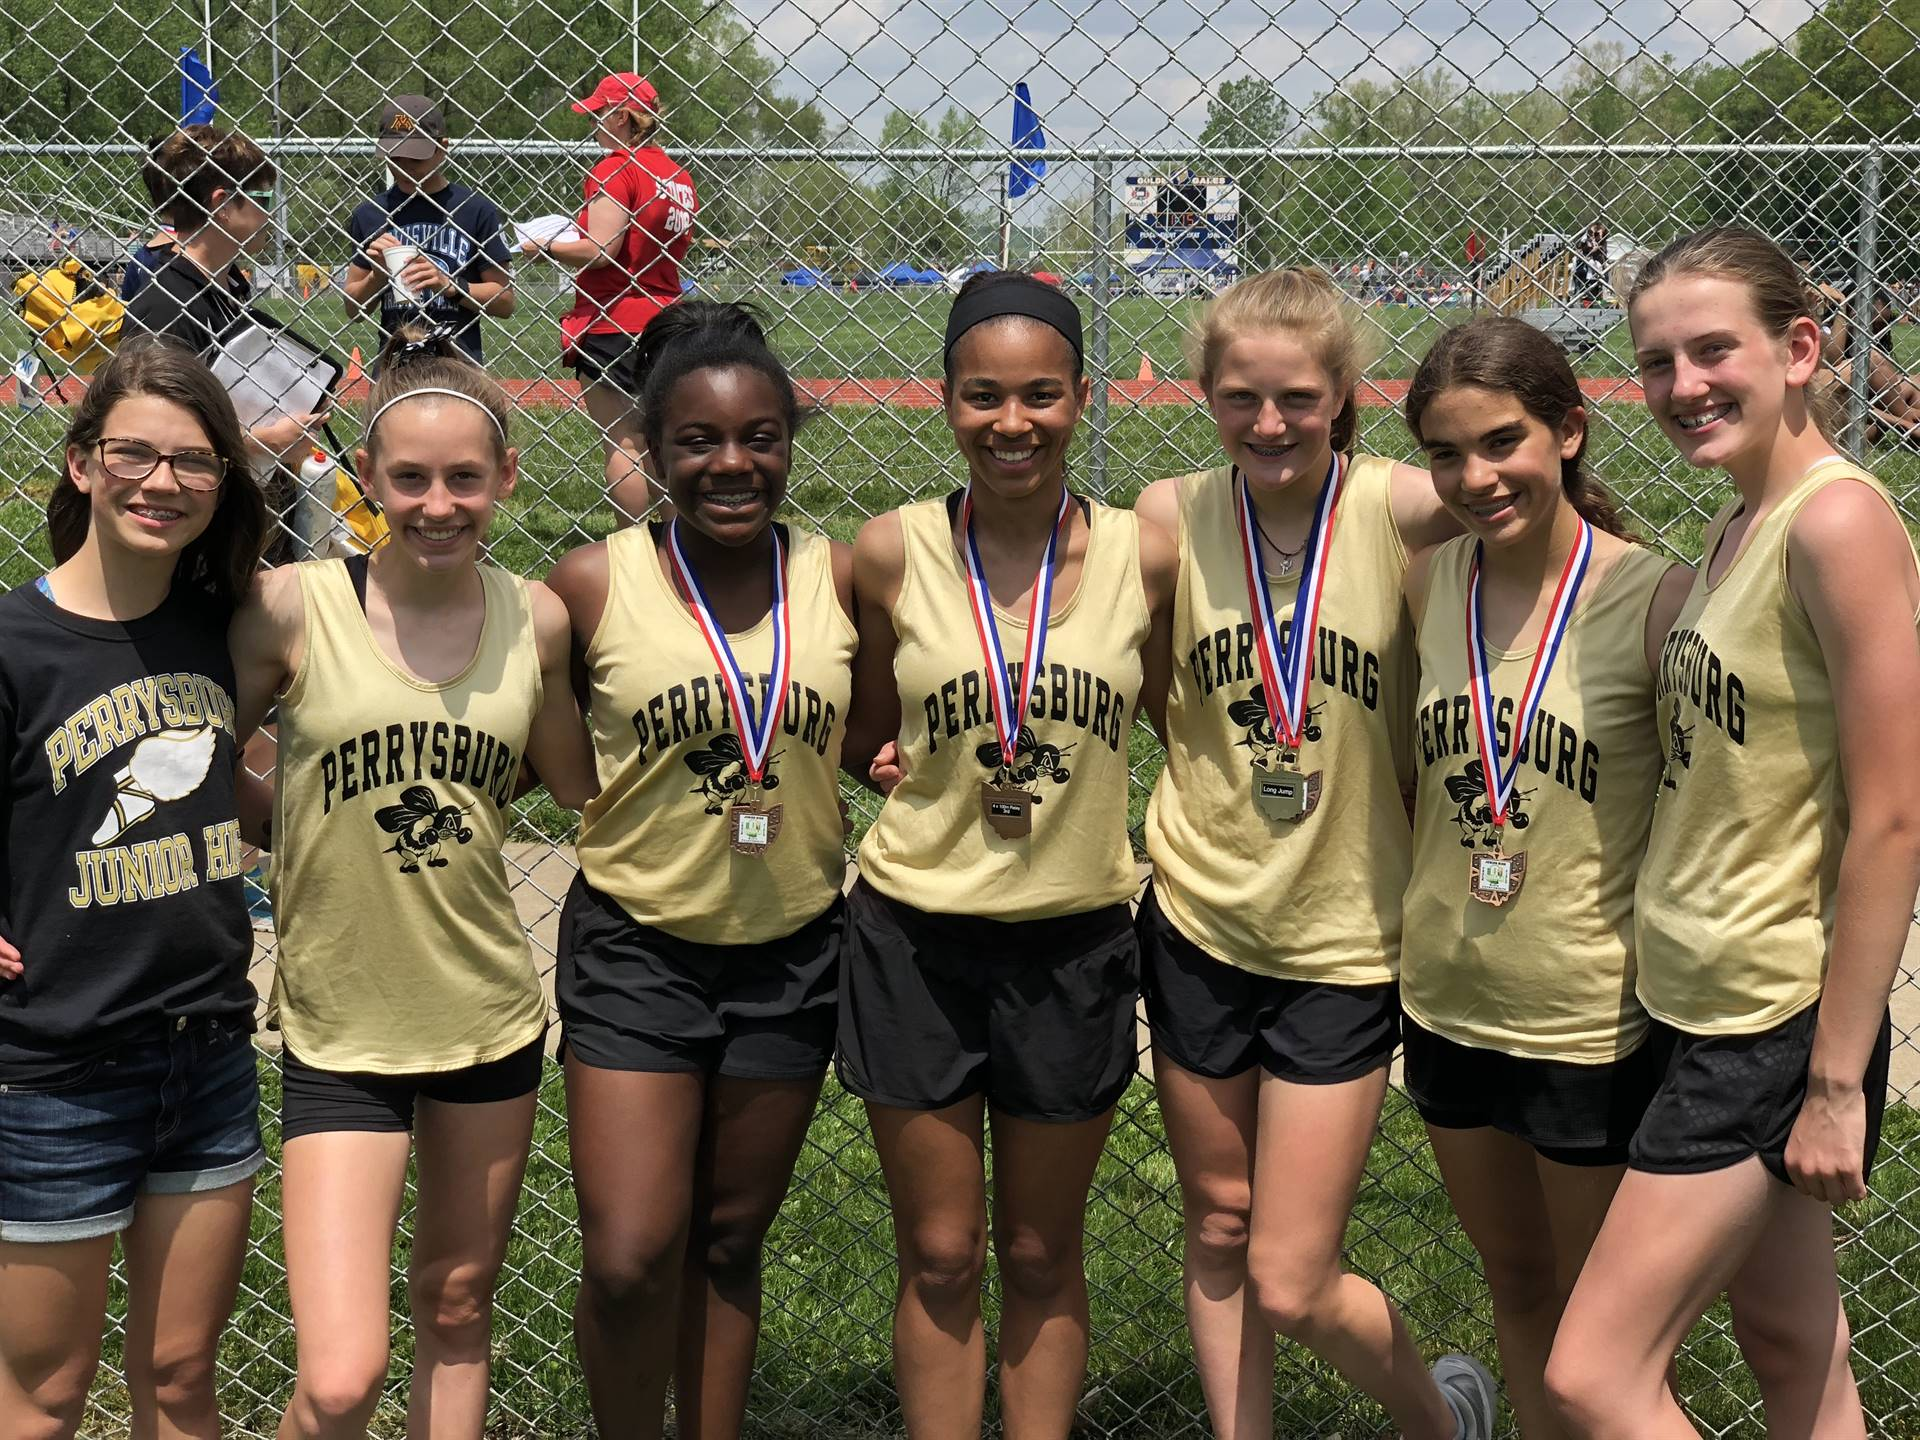 Members of the PJHS girls track and field team qualified for the Jr. High State Championships in Lan